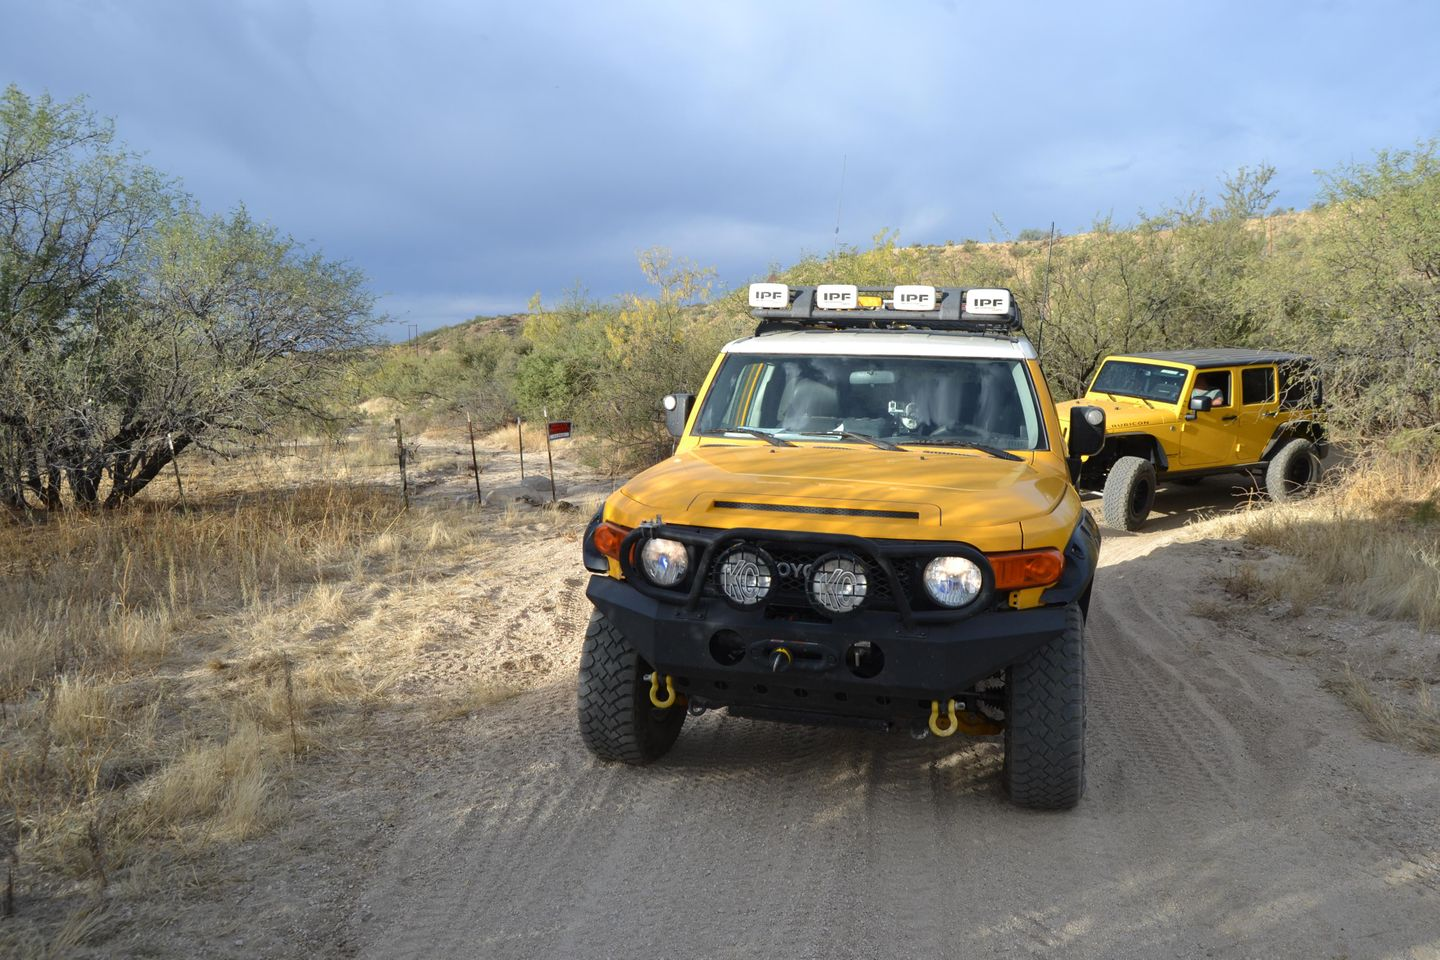 Charouleau Gap / FR# 736 - Waypoint 4: Private Road  - Gated Off